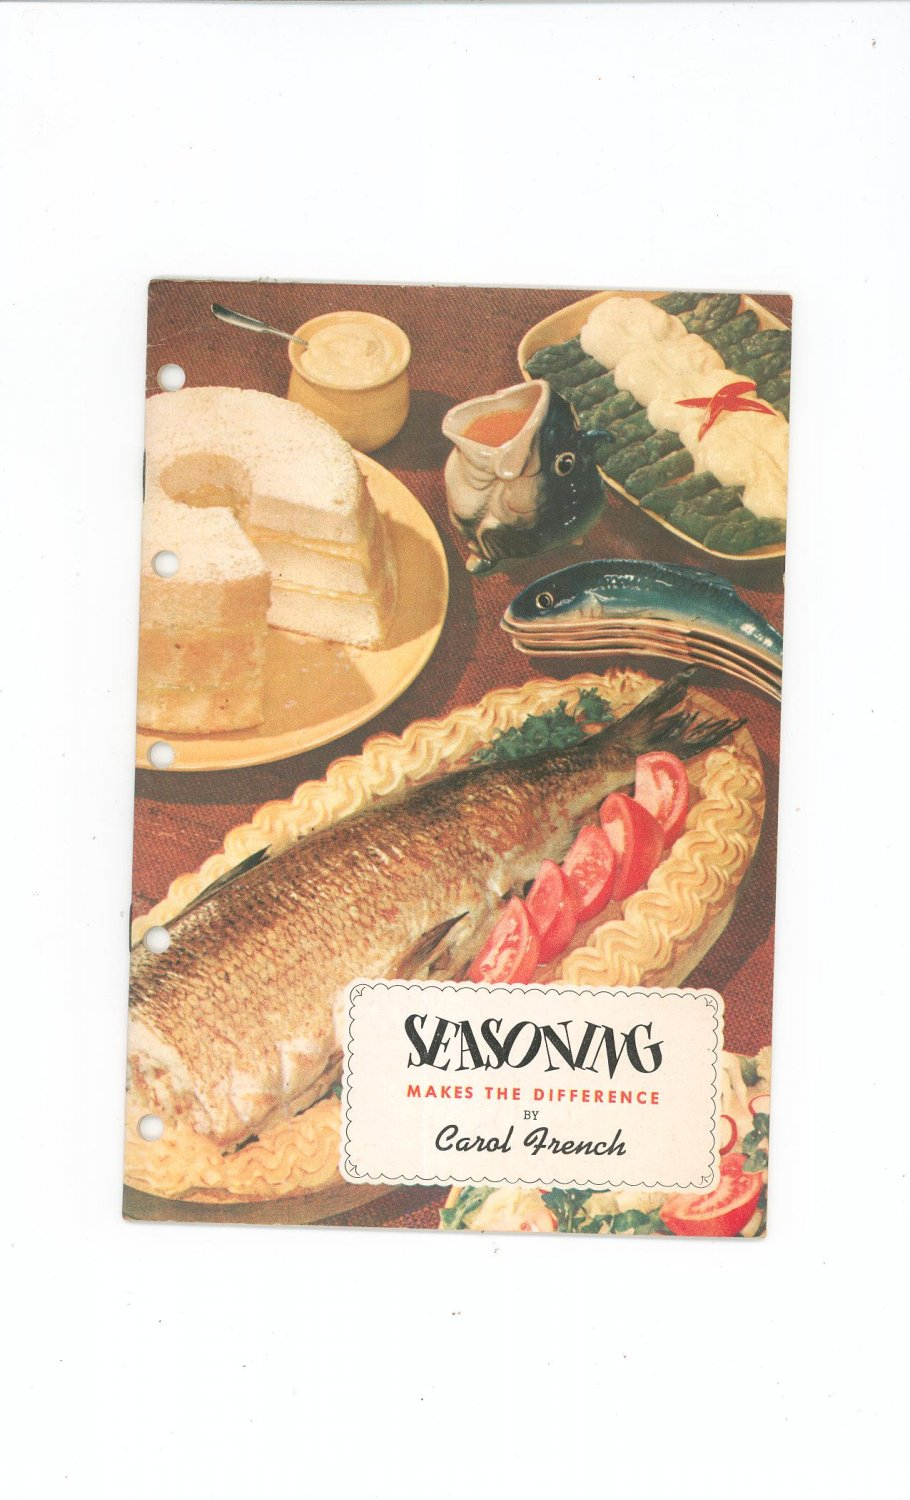 Vintage Seasoning Makes The Difference Cookbook by Carol French  R. T. French Co. 1951